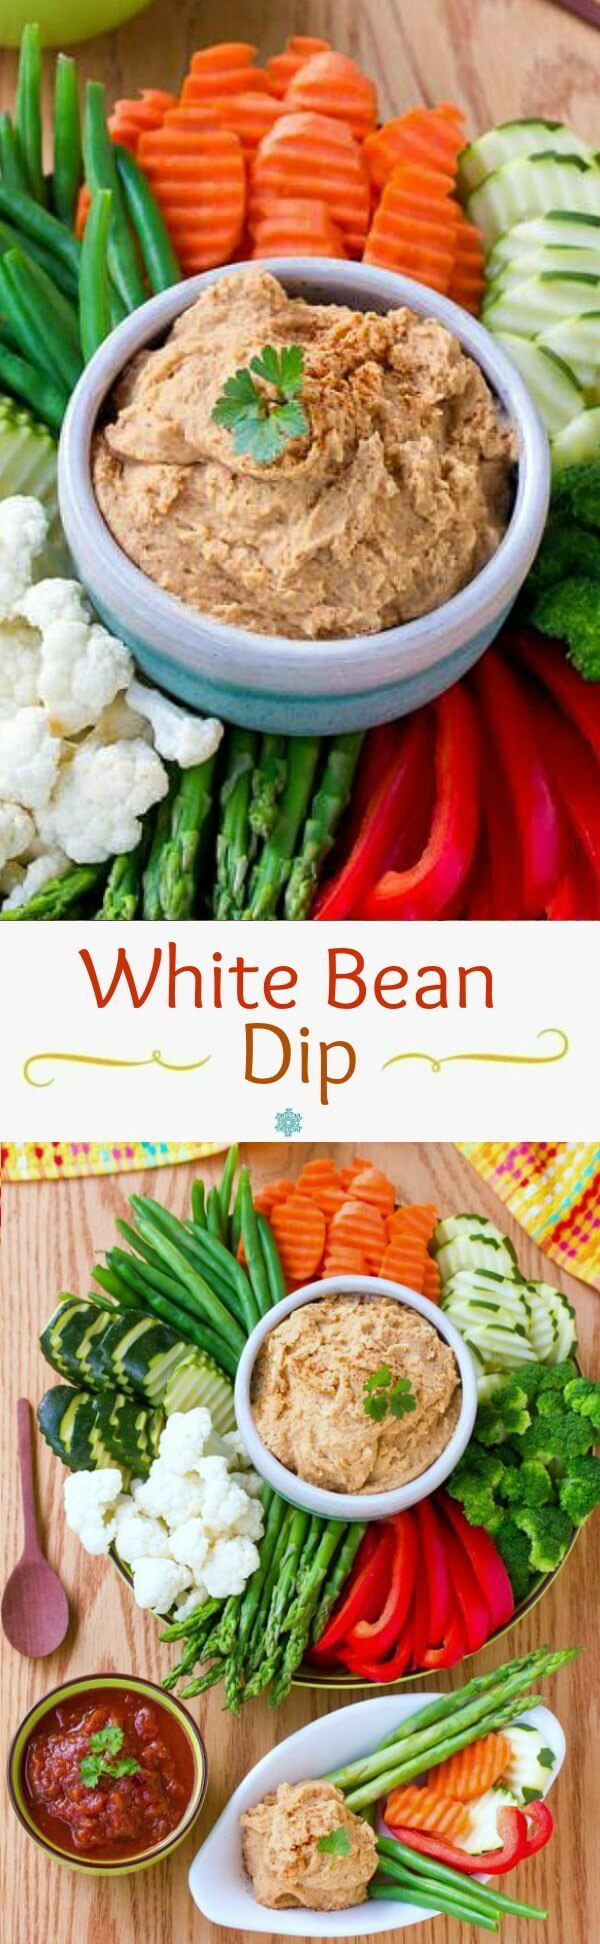 White Bean Dip is here to help with healthy noshing. Get ready for the next get-together that is just around the corner. Fast & tasty!